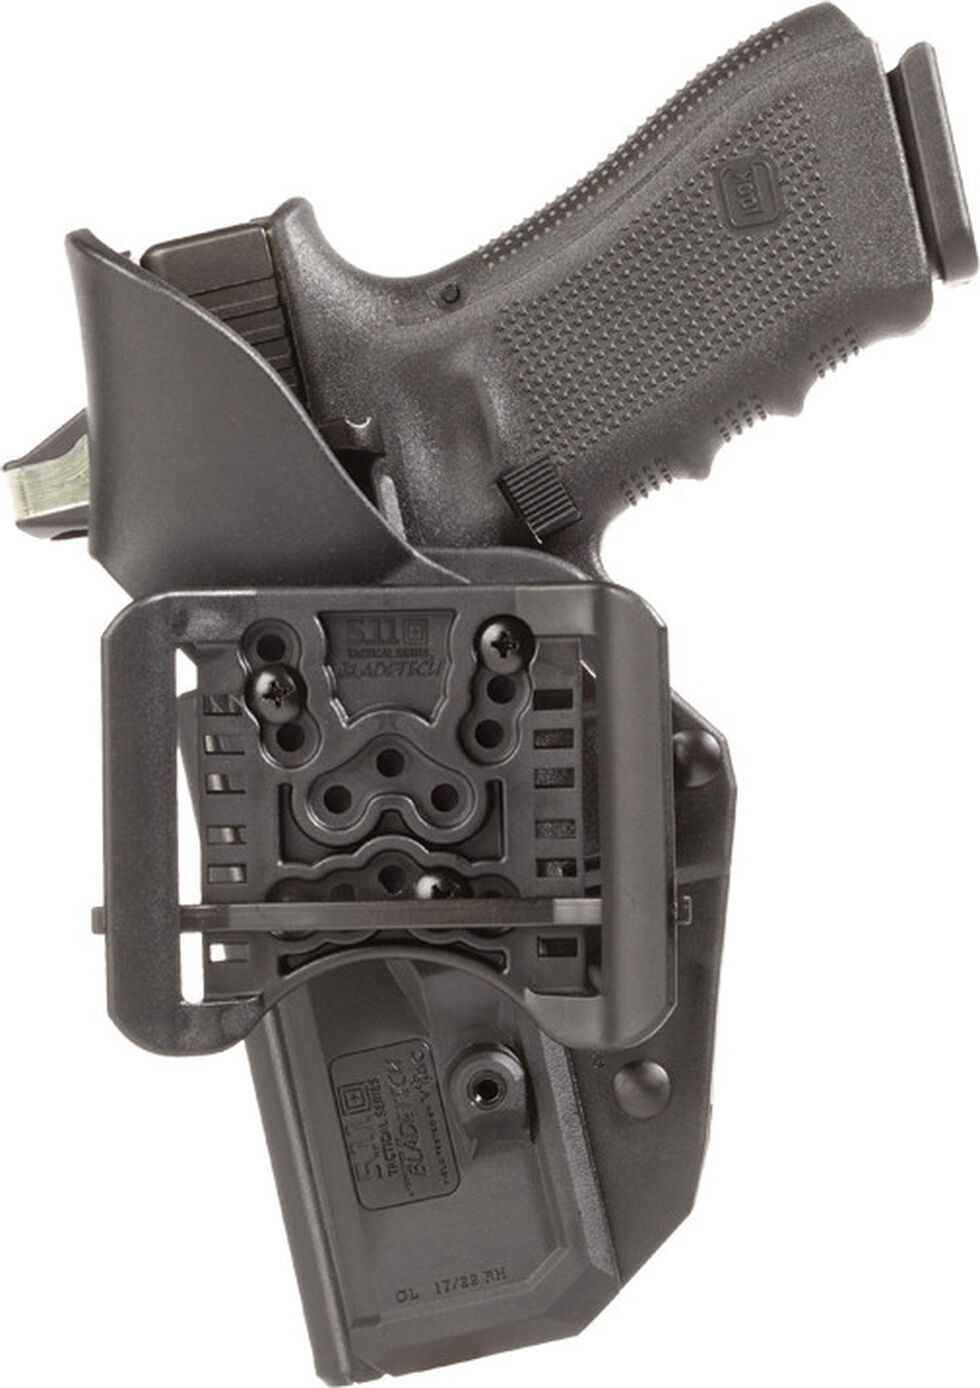 5.11 Tactical Thumbdrive Holster - Sig Sauer 228/229 (Right Hand), Black, hi-res